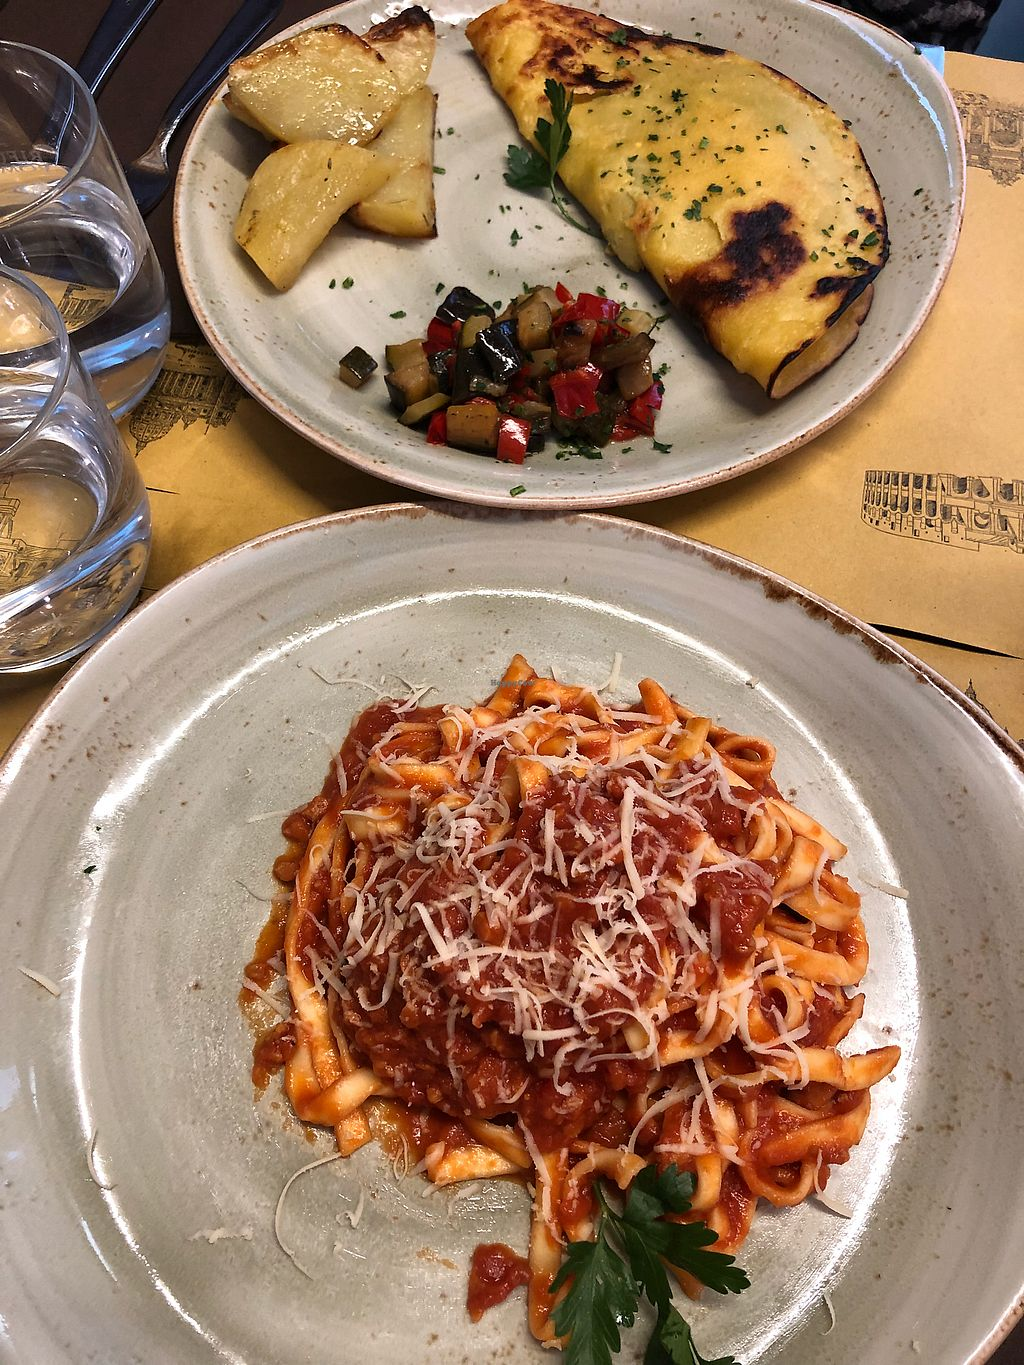 "Photo of Rifugio Romano  by <a href=""/members/profile/marreika"">marreika</a> <br/>Italian pasta and chickpea omelette <br/> April 22, 2018  - <a href='/contact/abuse/image/72423/389461'>Report</a>"